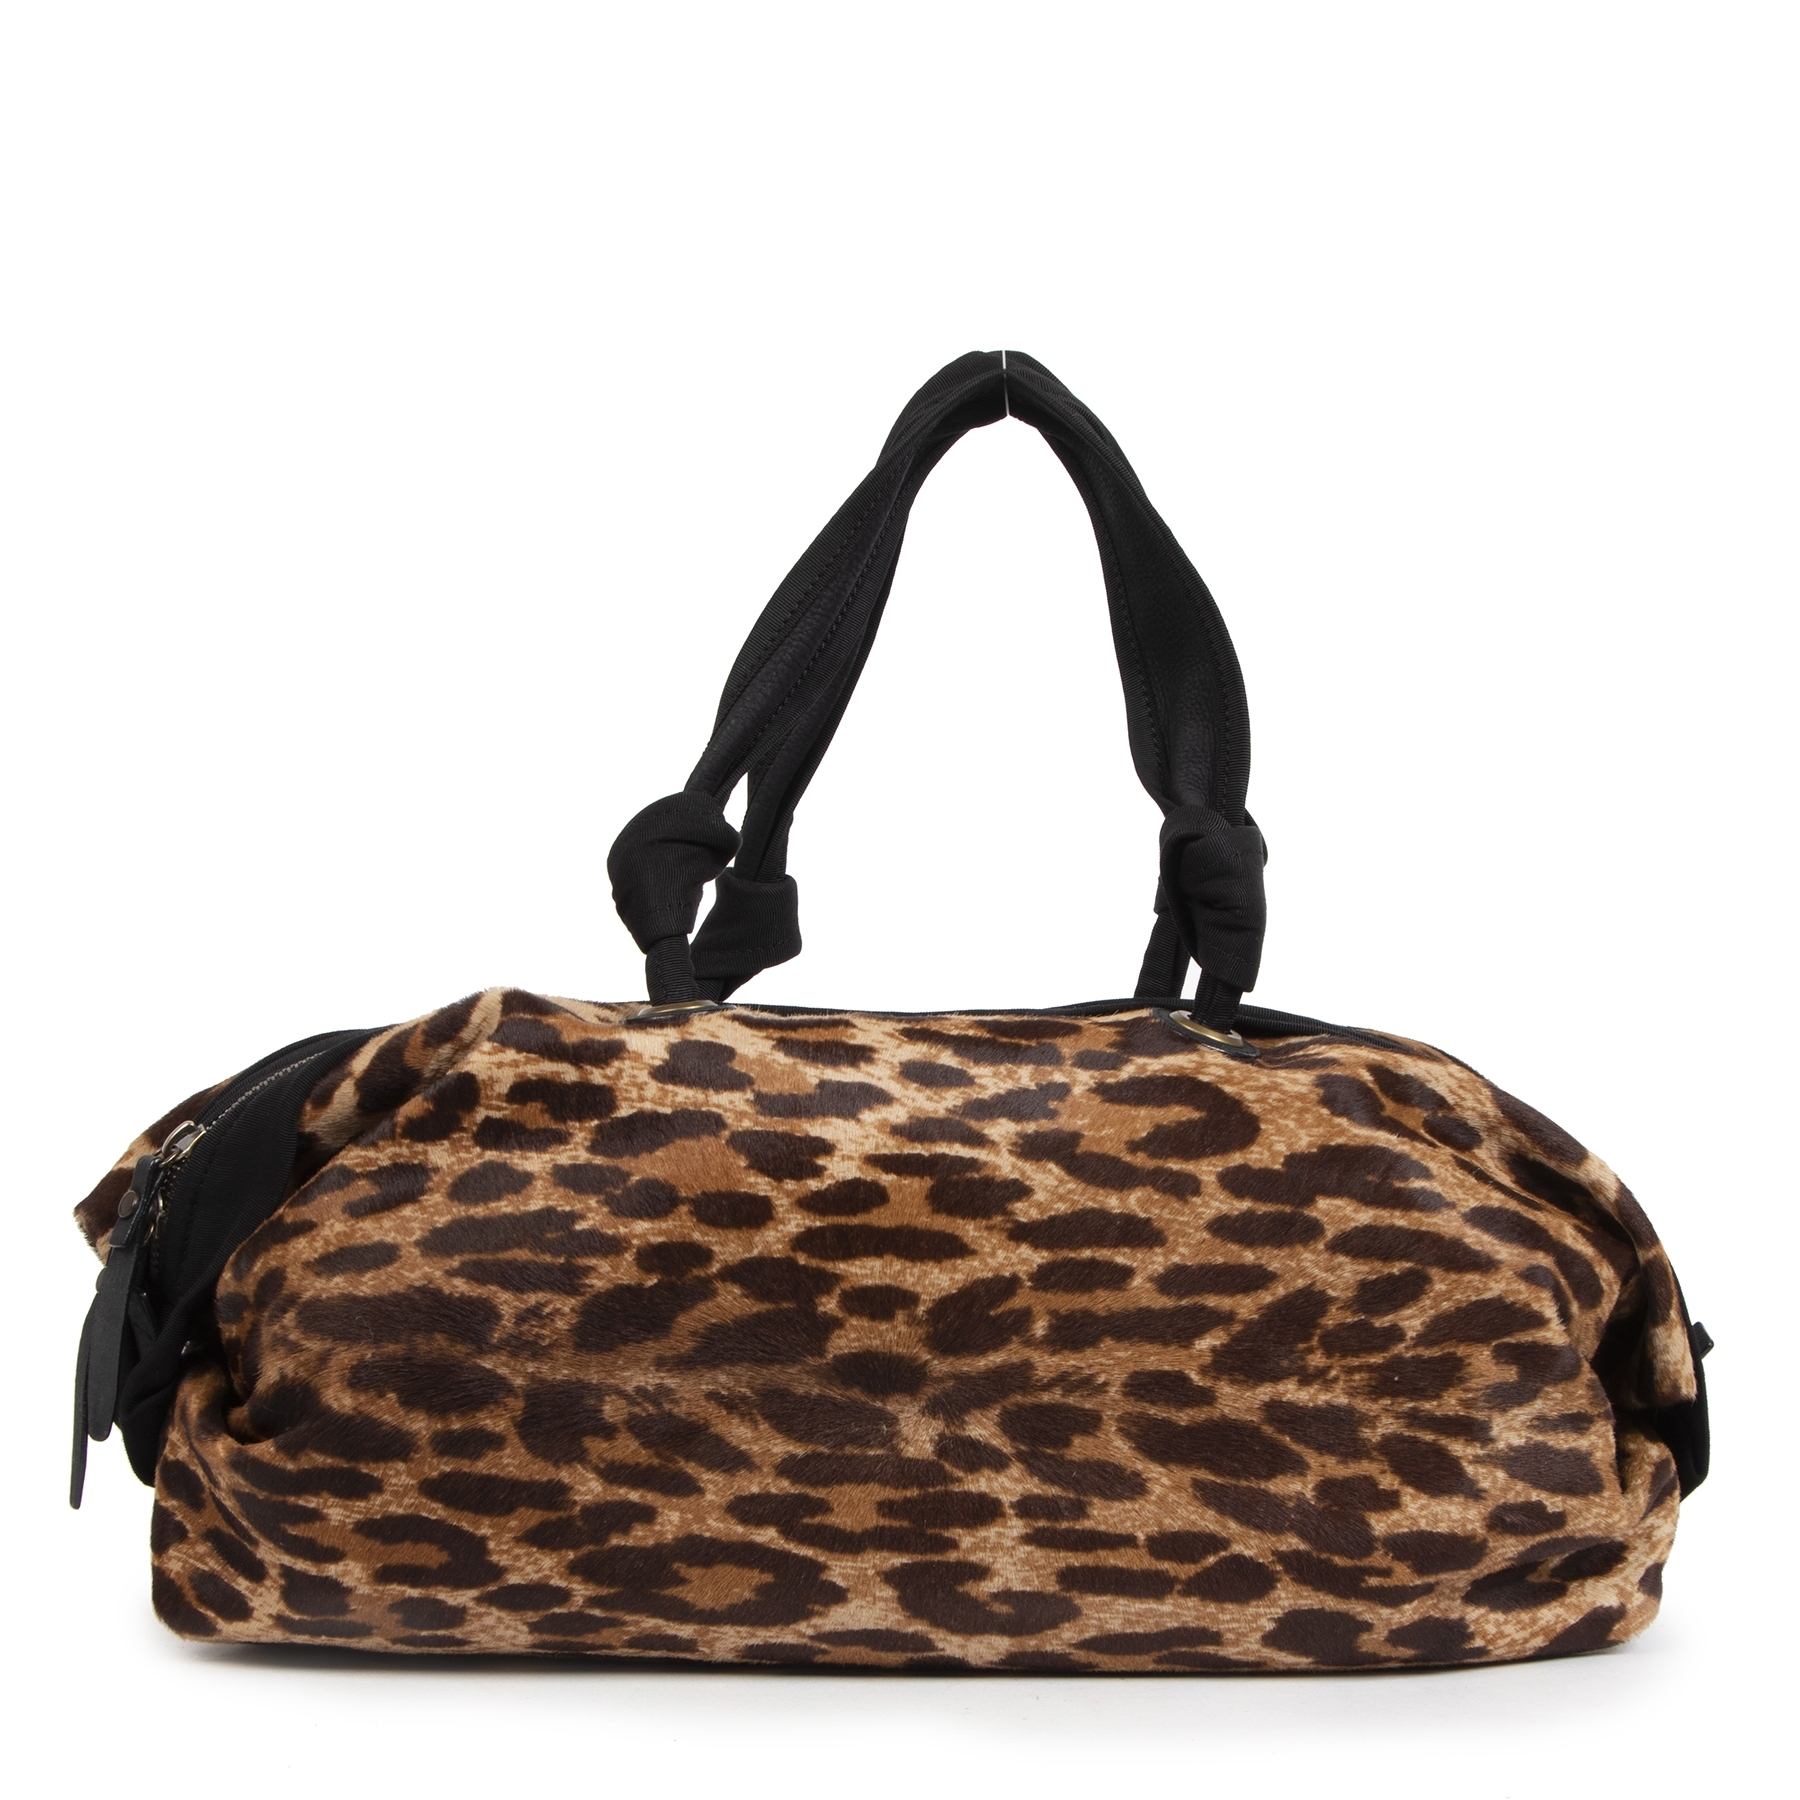 Authentic secondhand Lanvin Leopard Bowling Bag designer bags designer brands luxury vintage webshop safe secure online shopping worldwide shipping